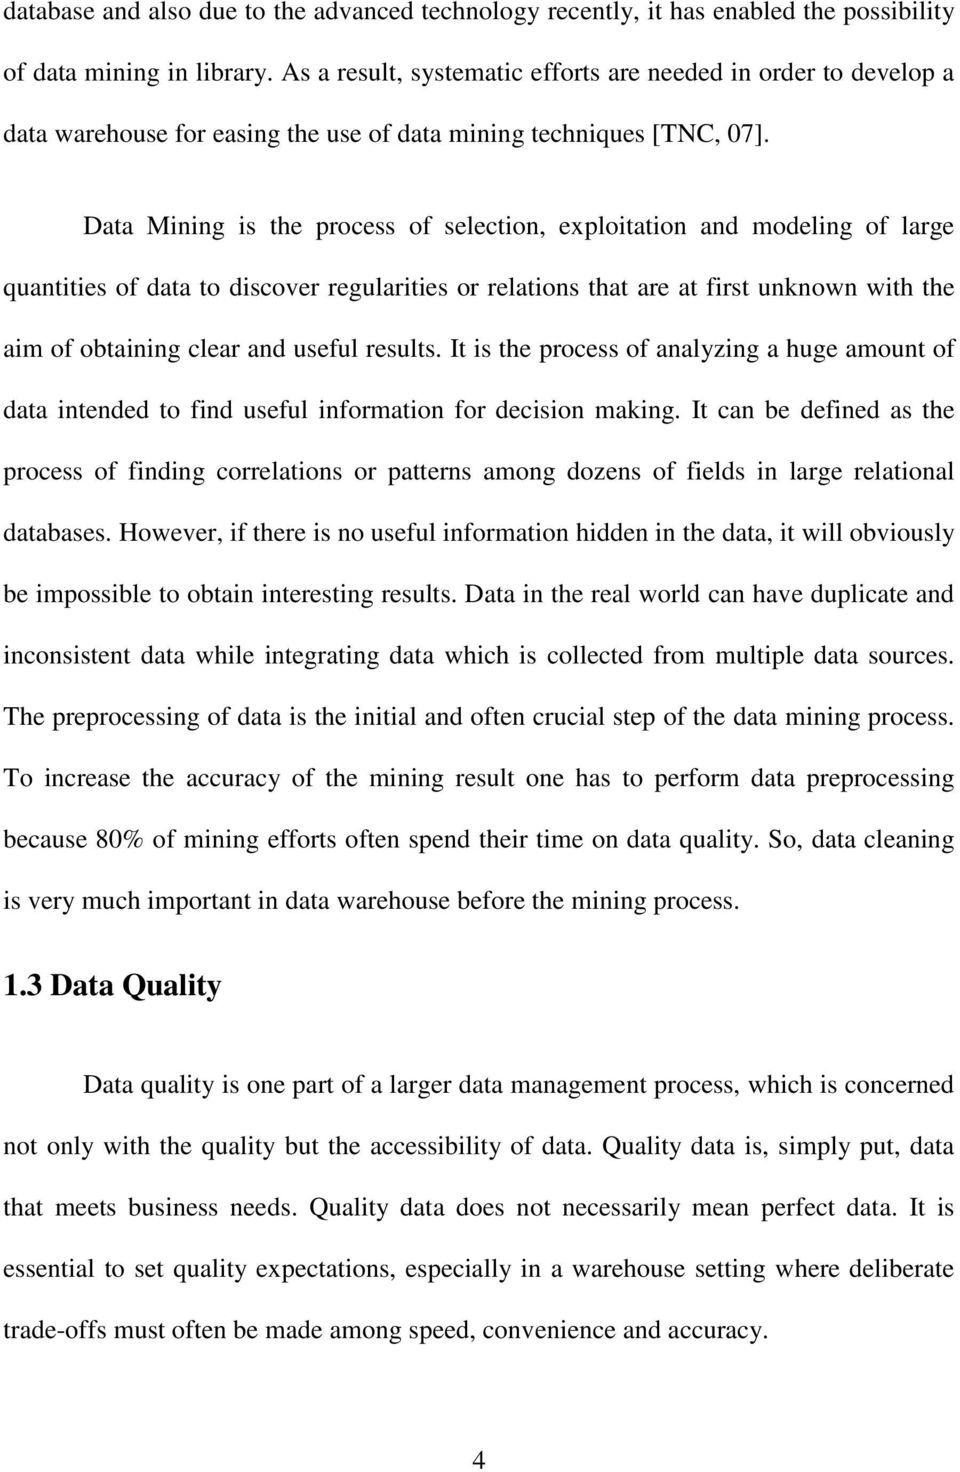 Data Mining is the process of selection, exploitation and modeling of large quantities of data to discover regularities or relations that are at first unknown with the aim of obtaining clear and